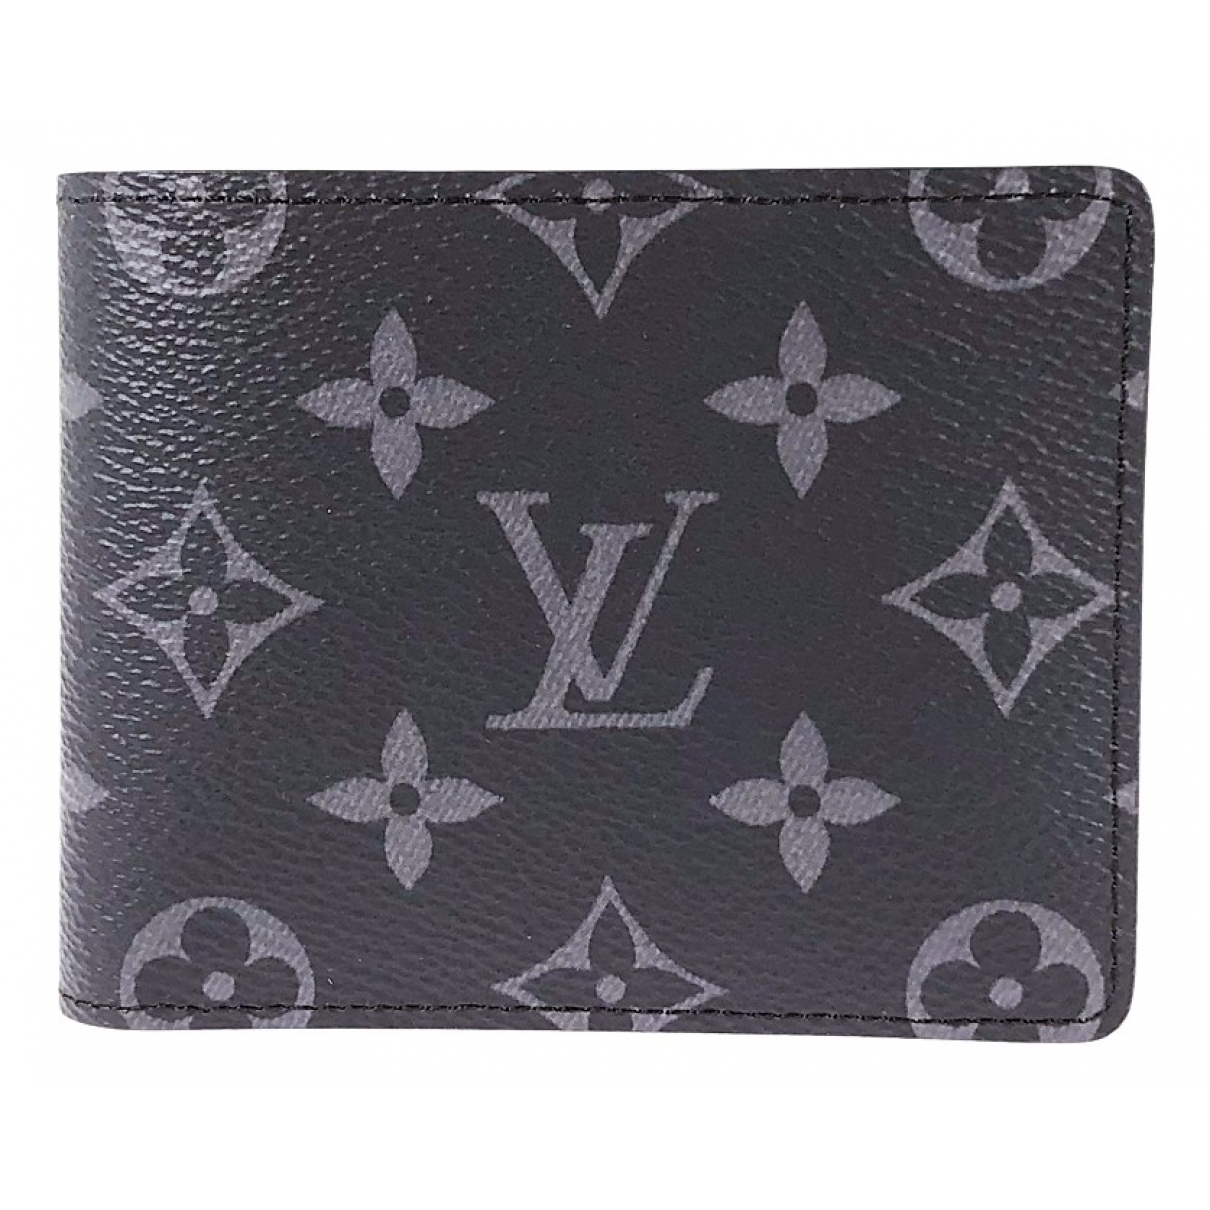 Louis Vuitton \N Kleinlederwaren in  Schwarz Leinen